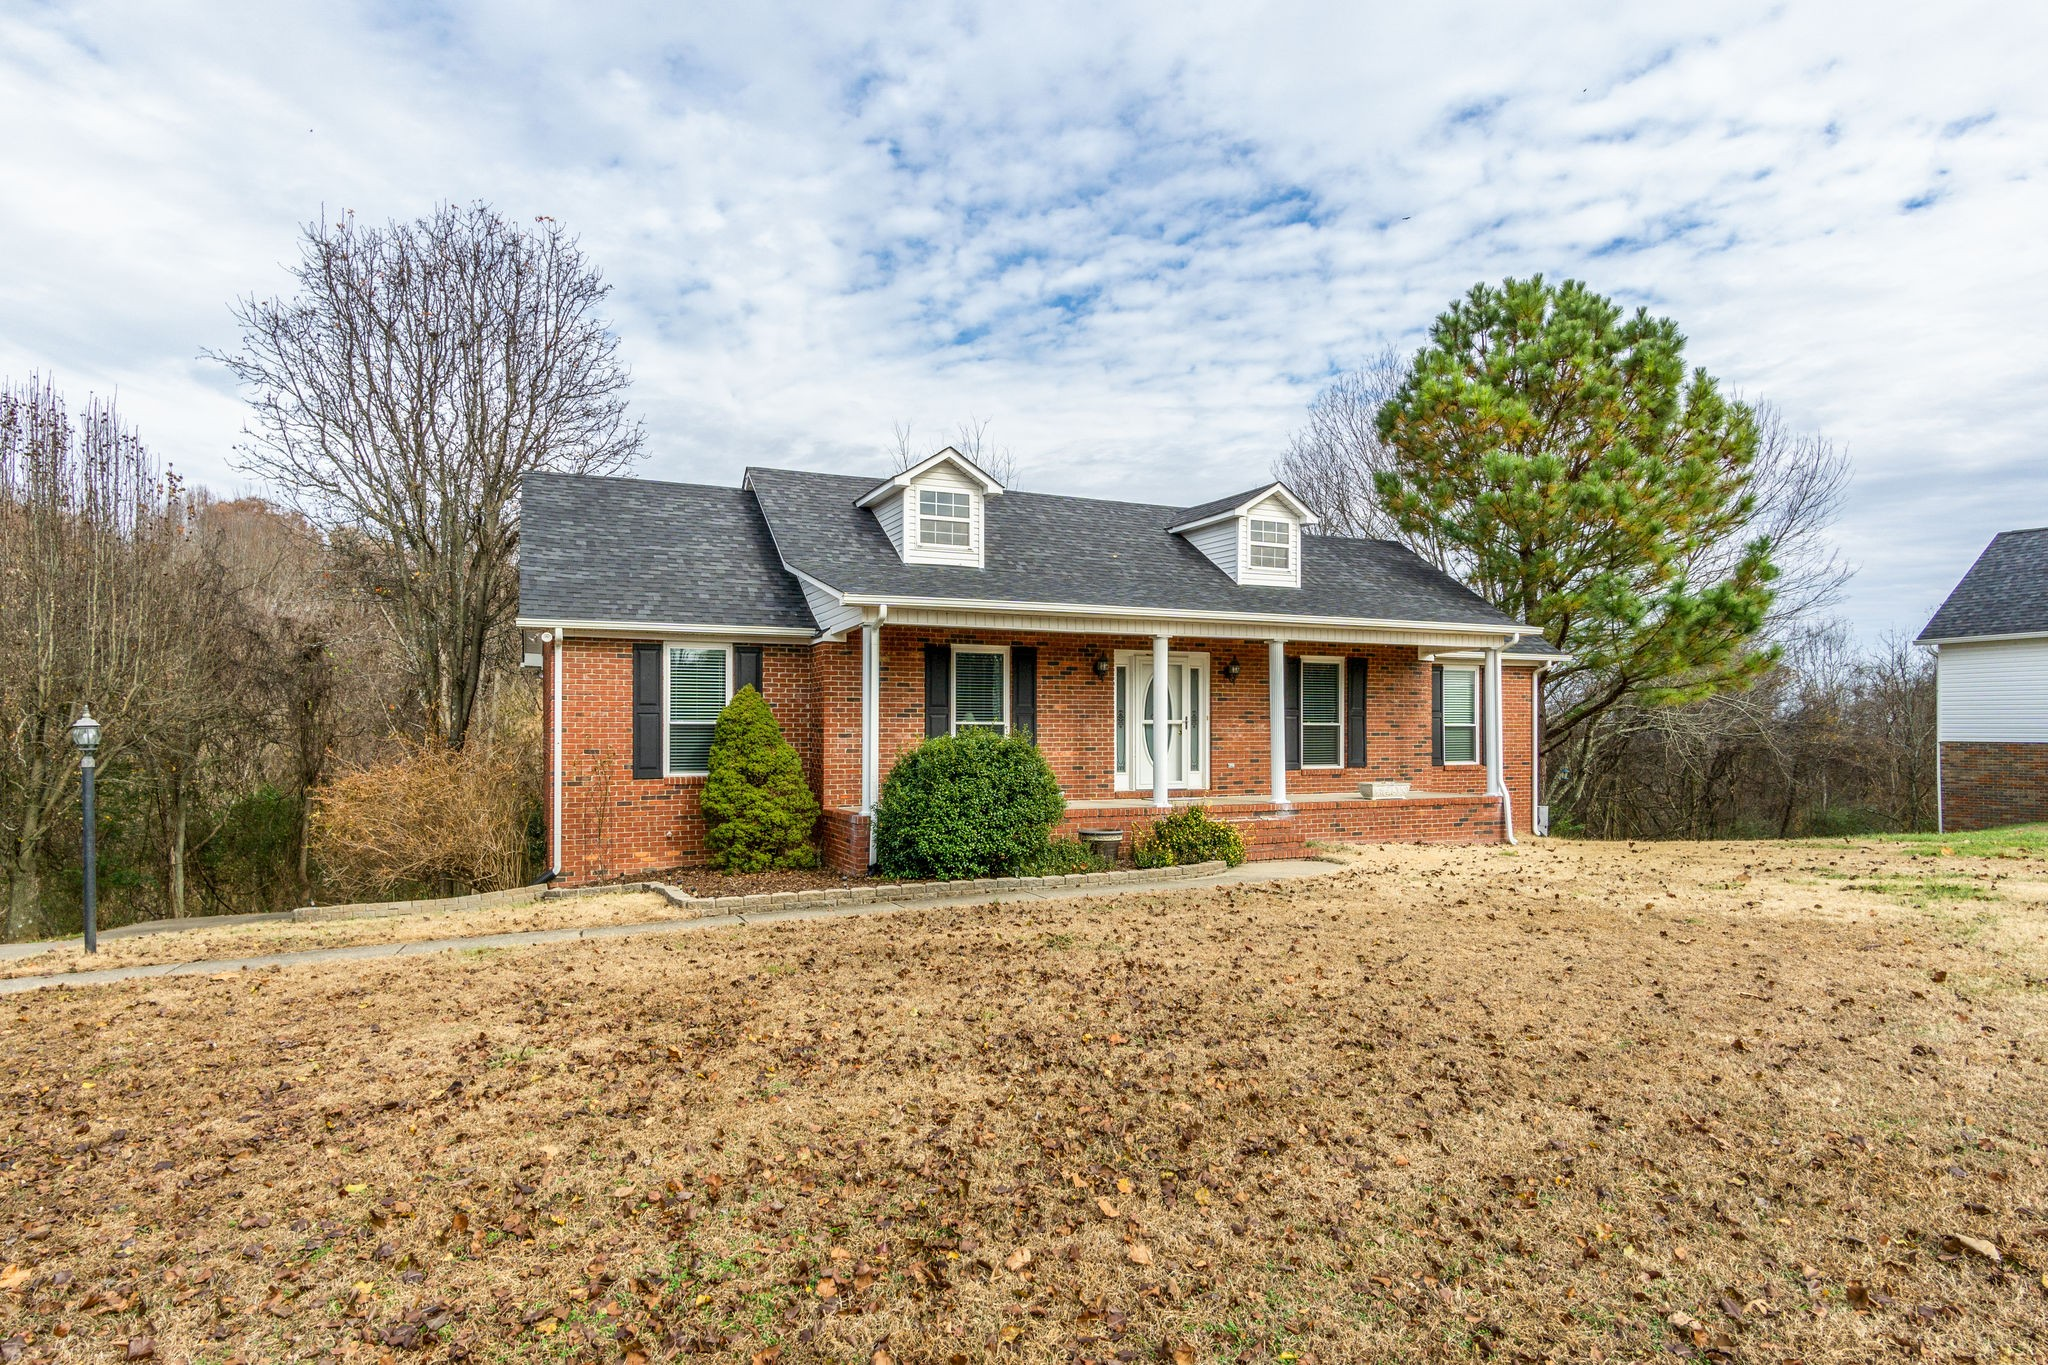 135 Crestview Dr, Lewisburg, TN 37091 - Lewisburg, TN real estate listing